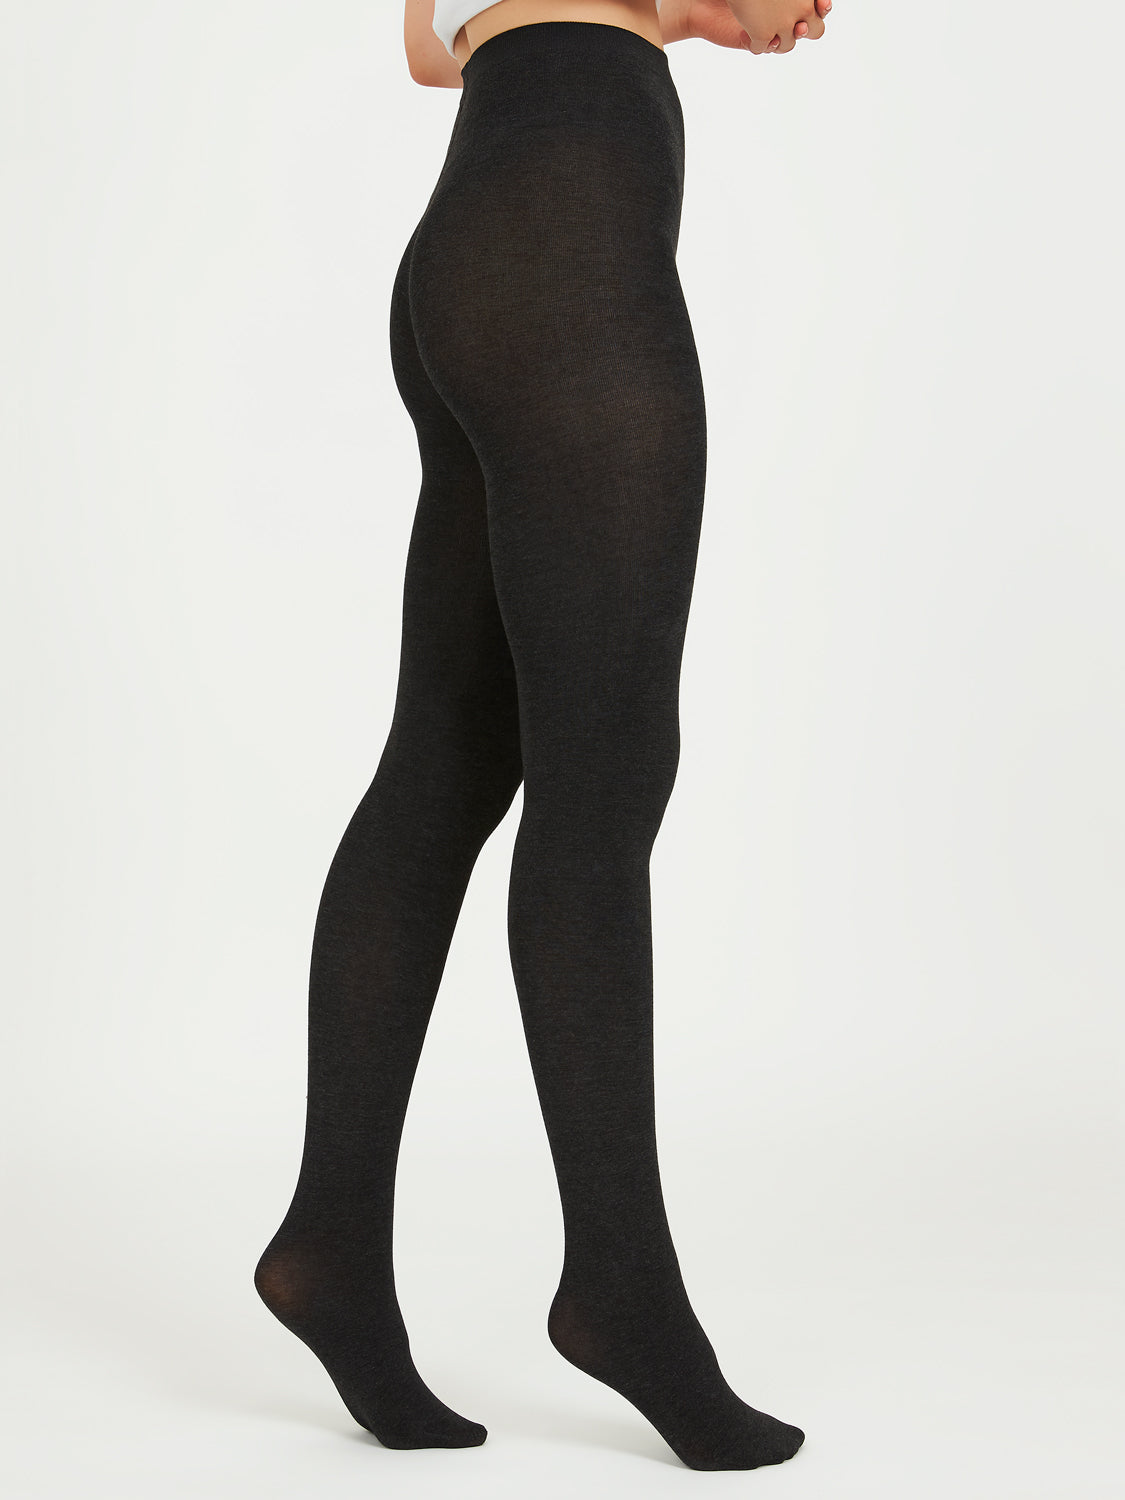 Collants en tricot